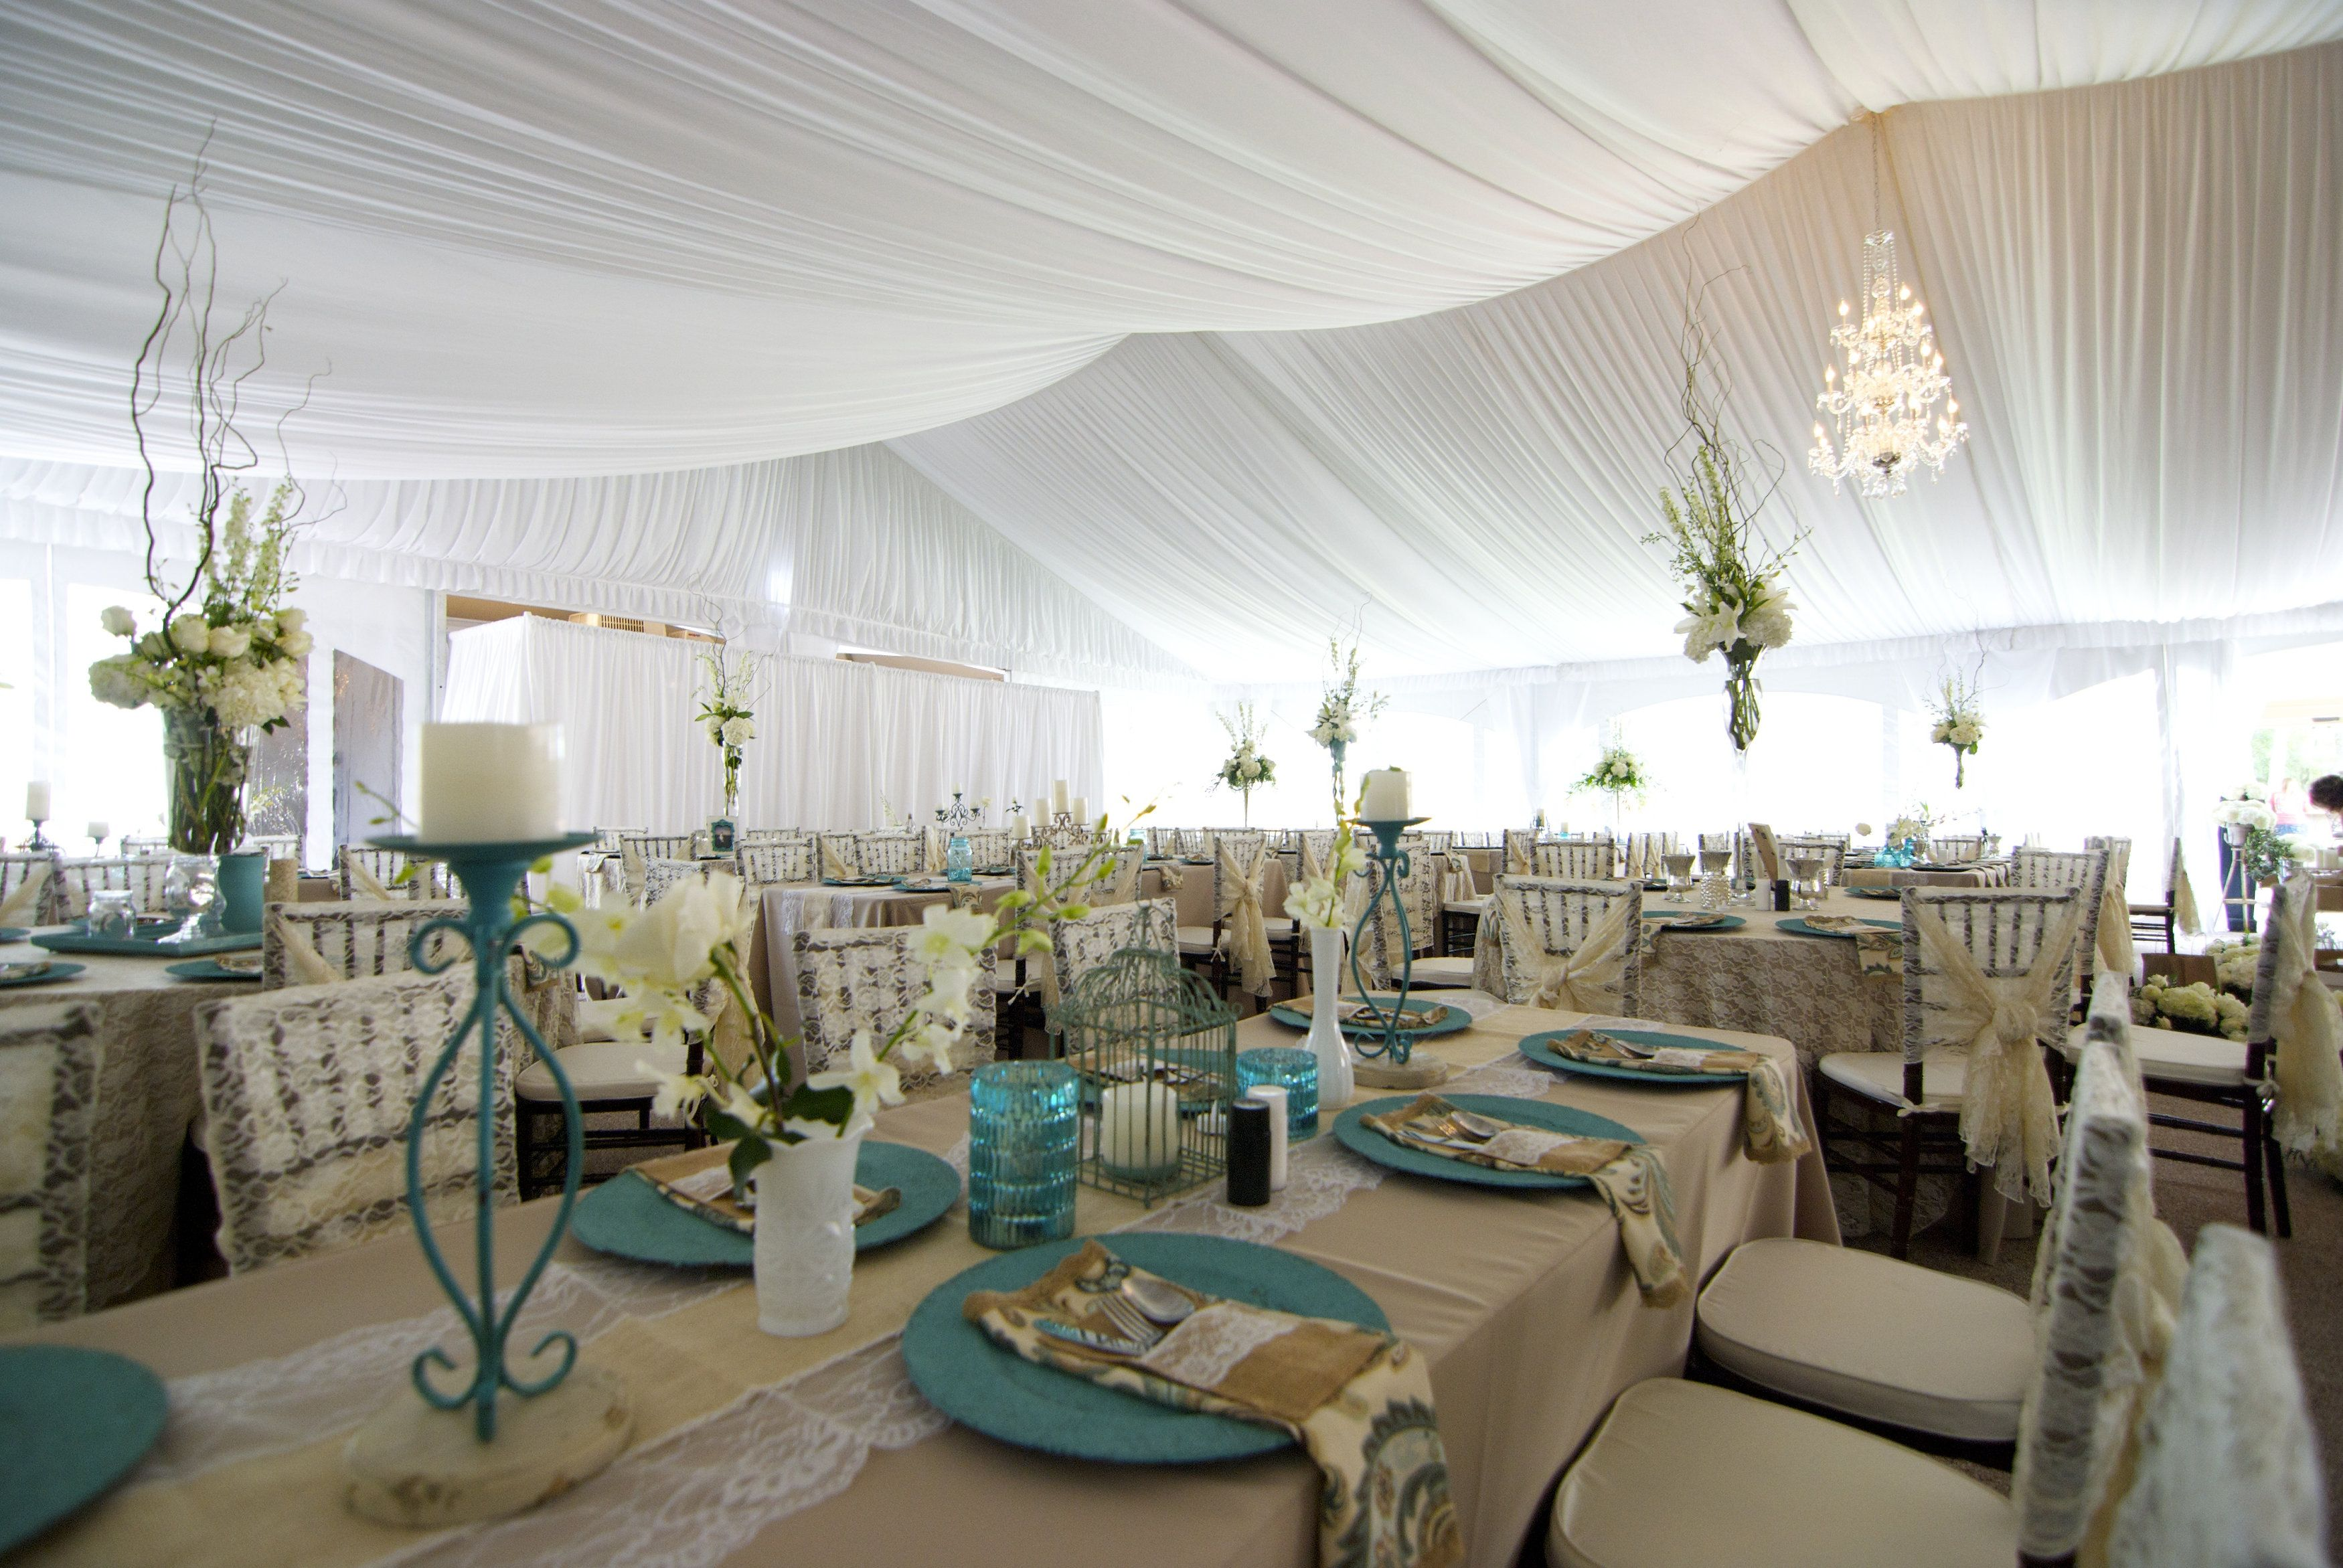 Beautifully elegant rustic wedding reception with blue accents ...